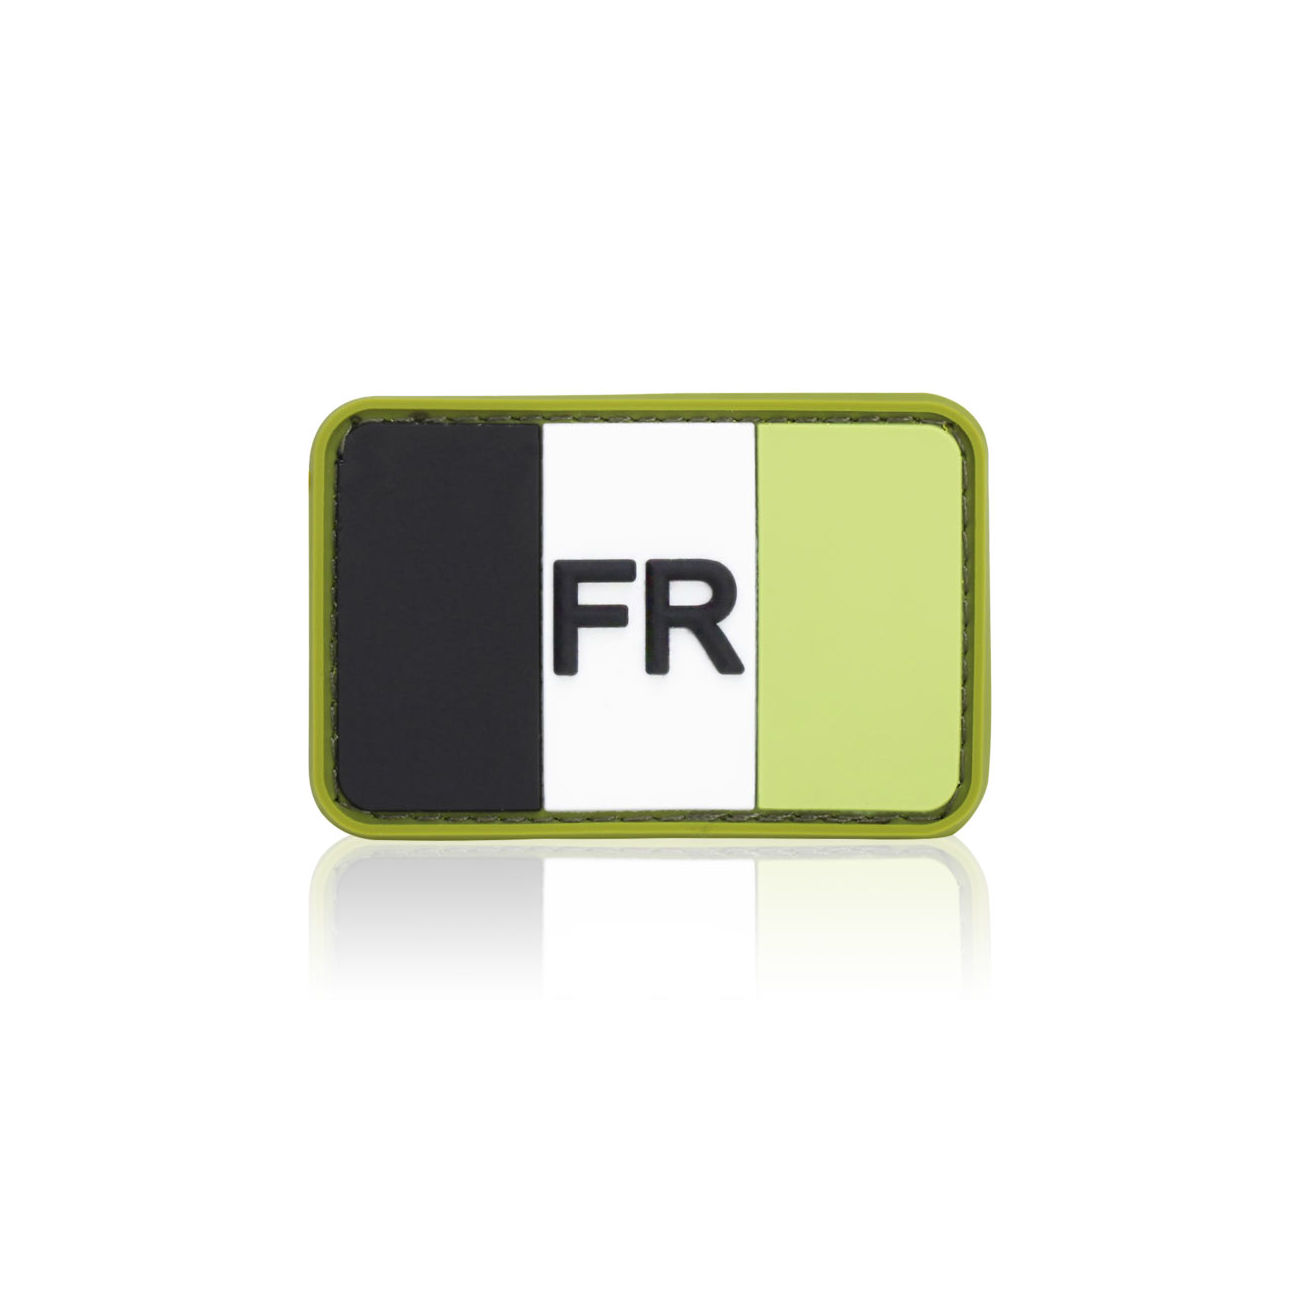 3D Rubber Patch Flagge Frankreich forest 0